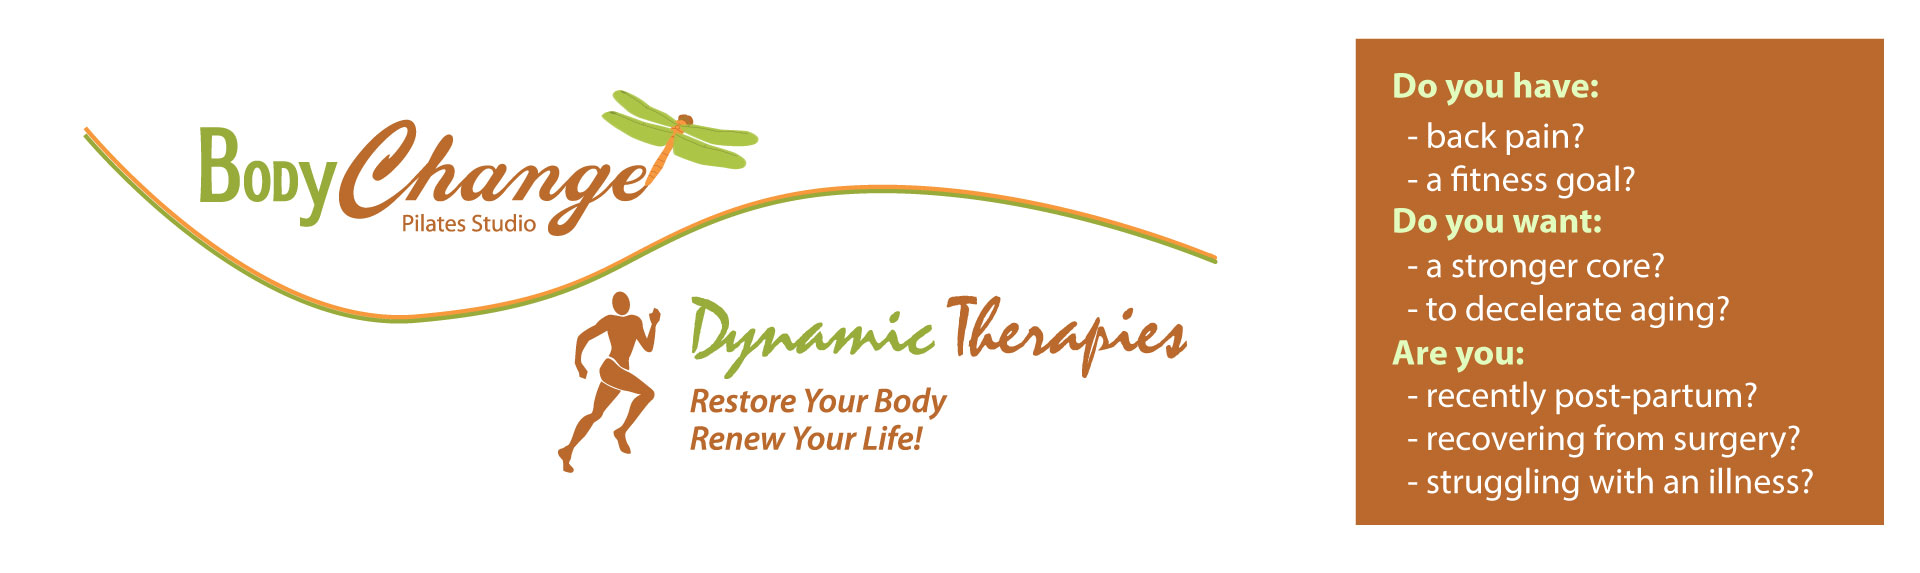 BodyChange Pilates Studio - Dynamic Therapies